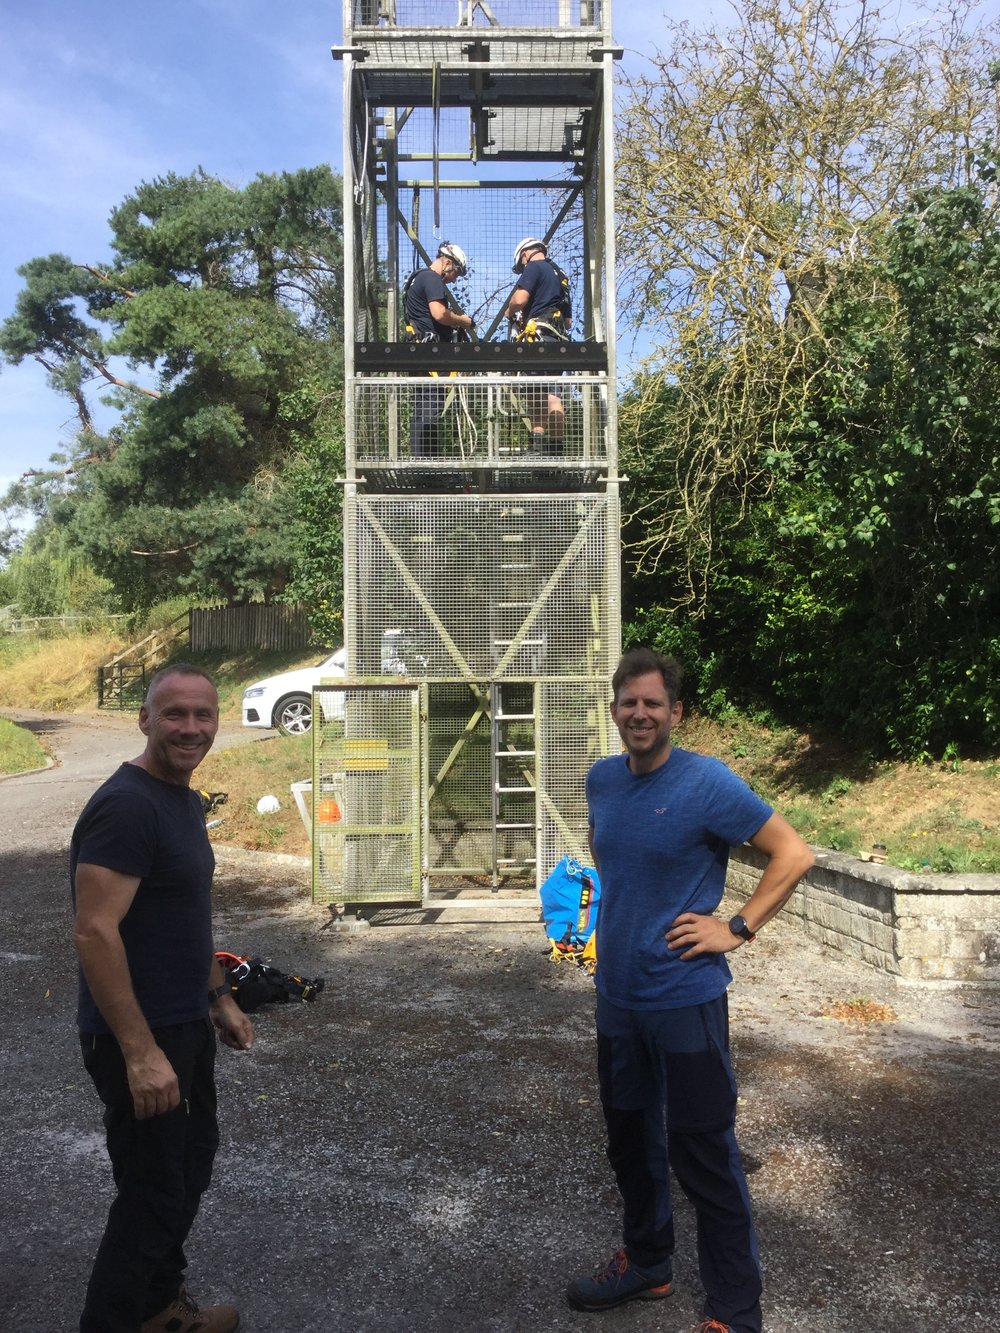 Serve On International Response Team recruits Steve and Benjamin before their SWAH training with Ian and Nick (up the tower) at Tisbury Fire Station.